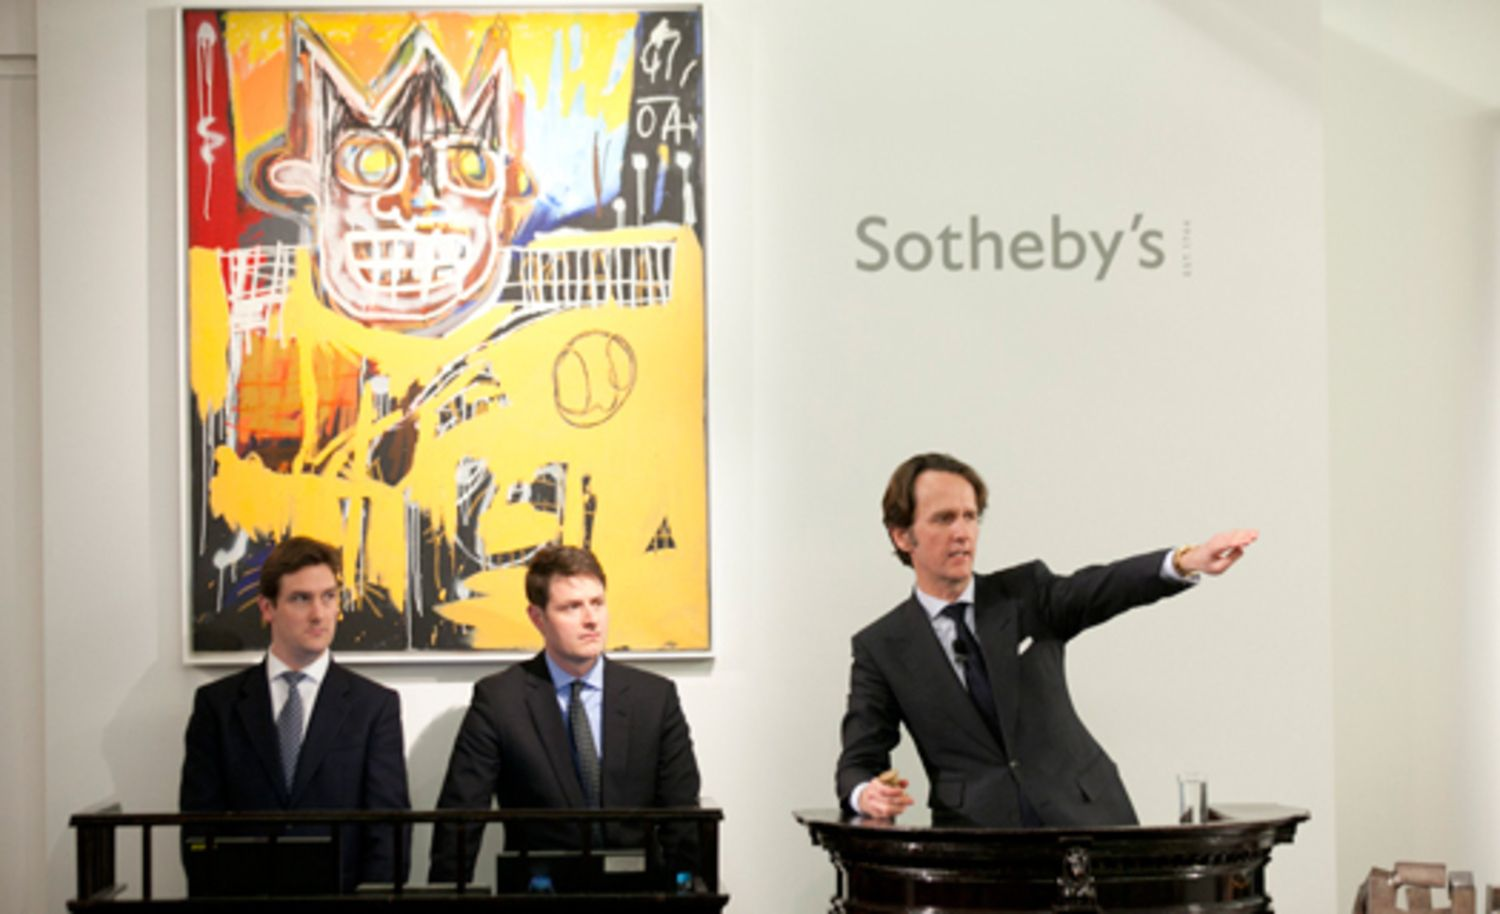 Sotheby S Partners With Ebay In Online Auctions Online Auctions Sothebys Auction